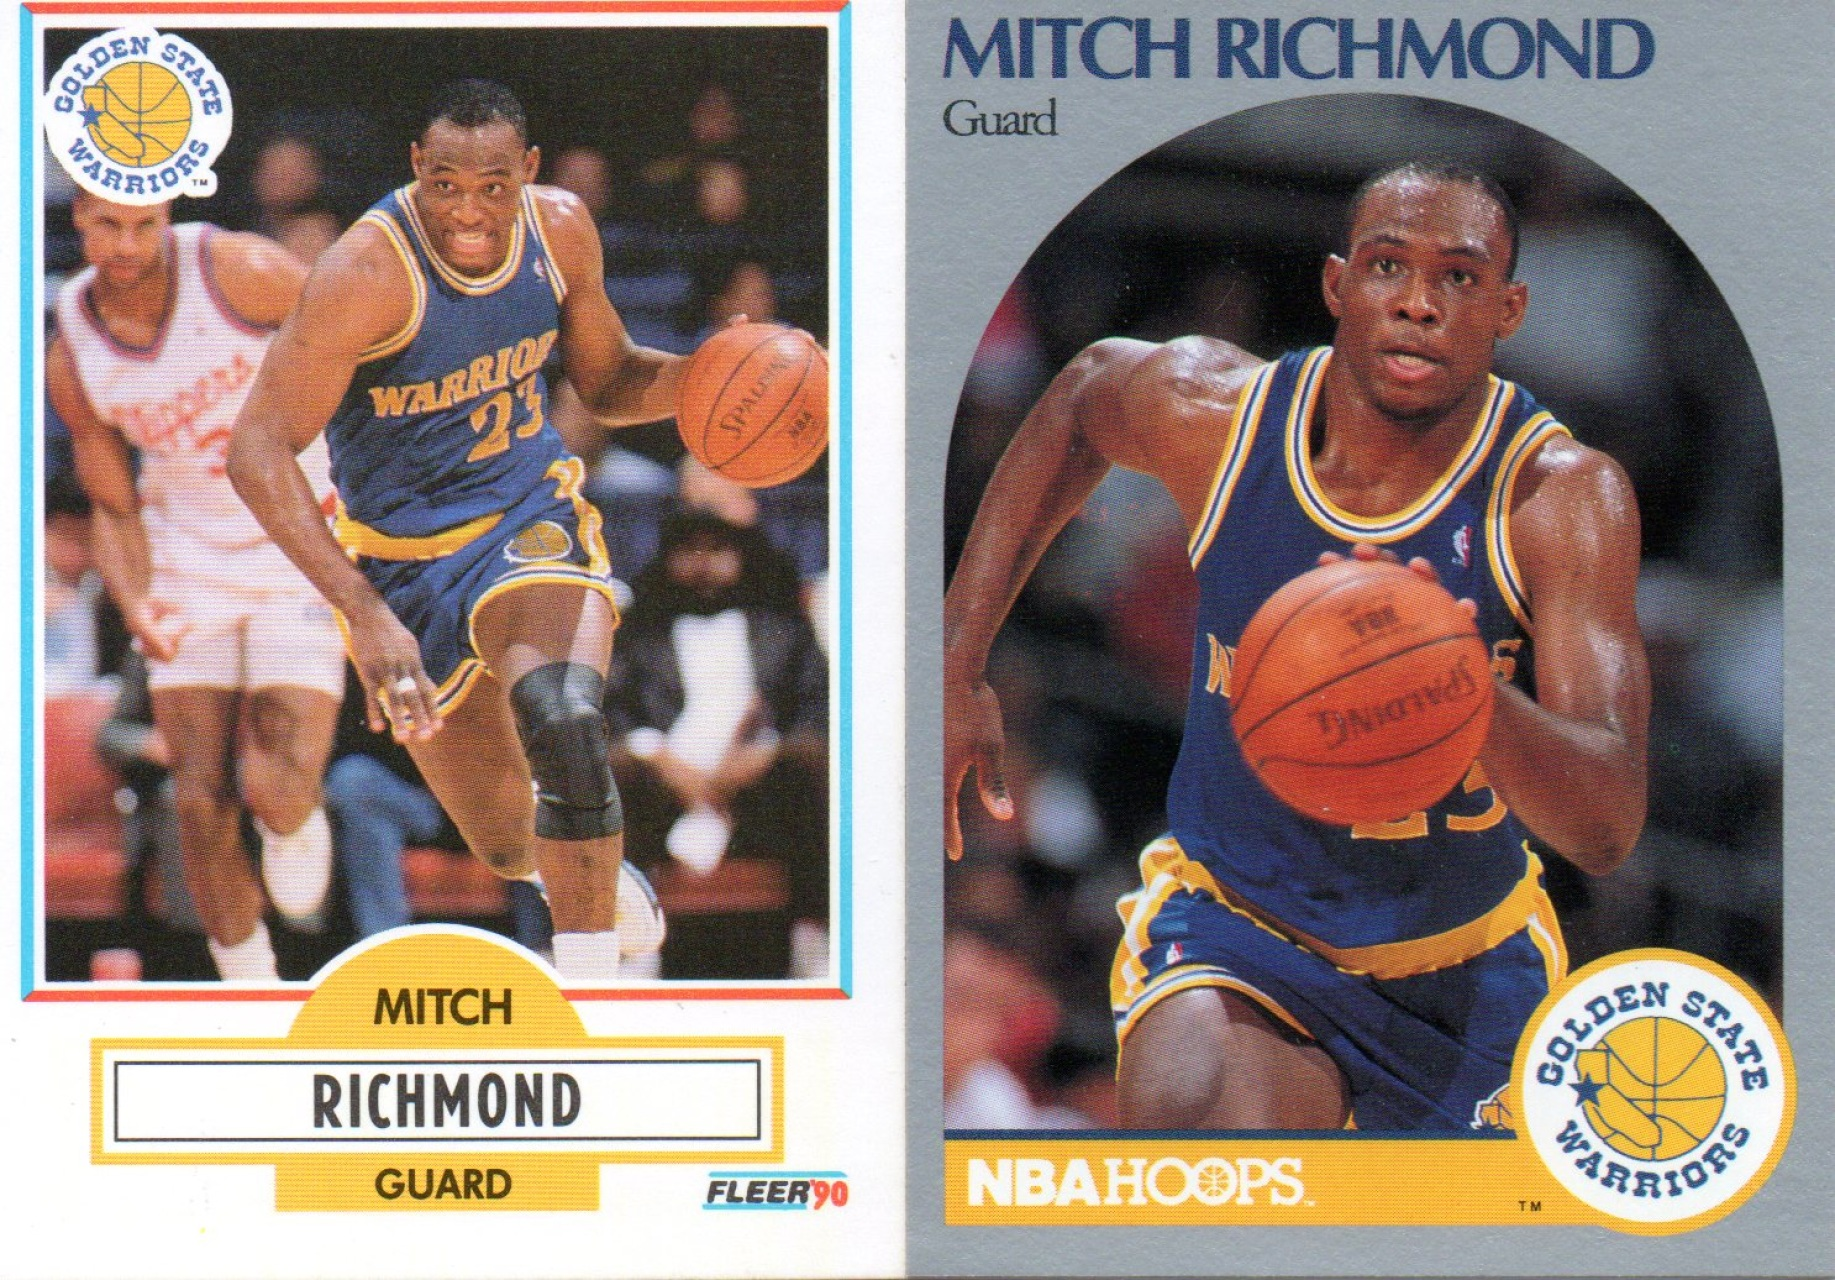 1988 1991 Warriors Basketball Trading Cards Basketball Cards by